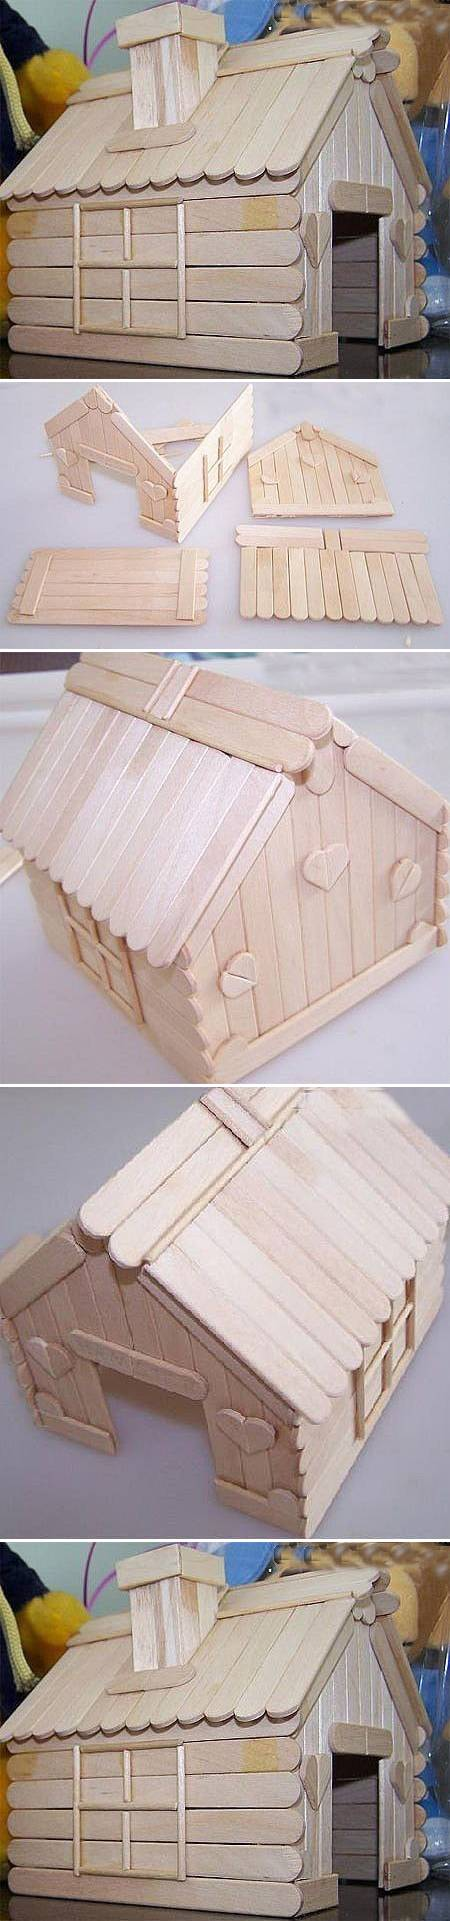 How to build a house with Popsicle Sticks step by step DIY tutorial instructions